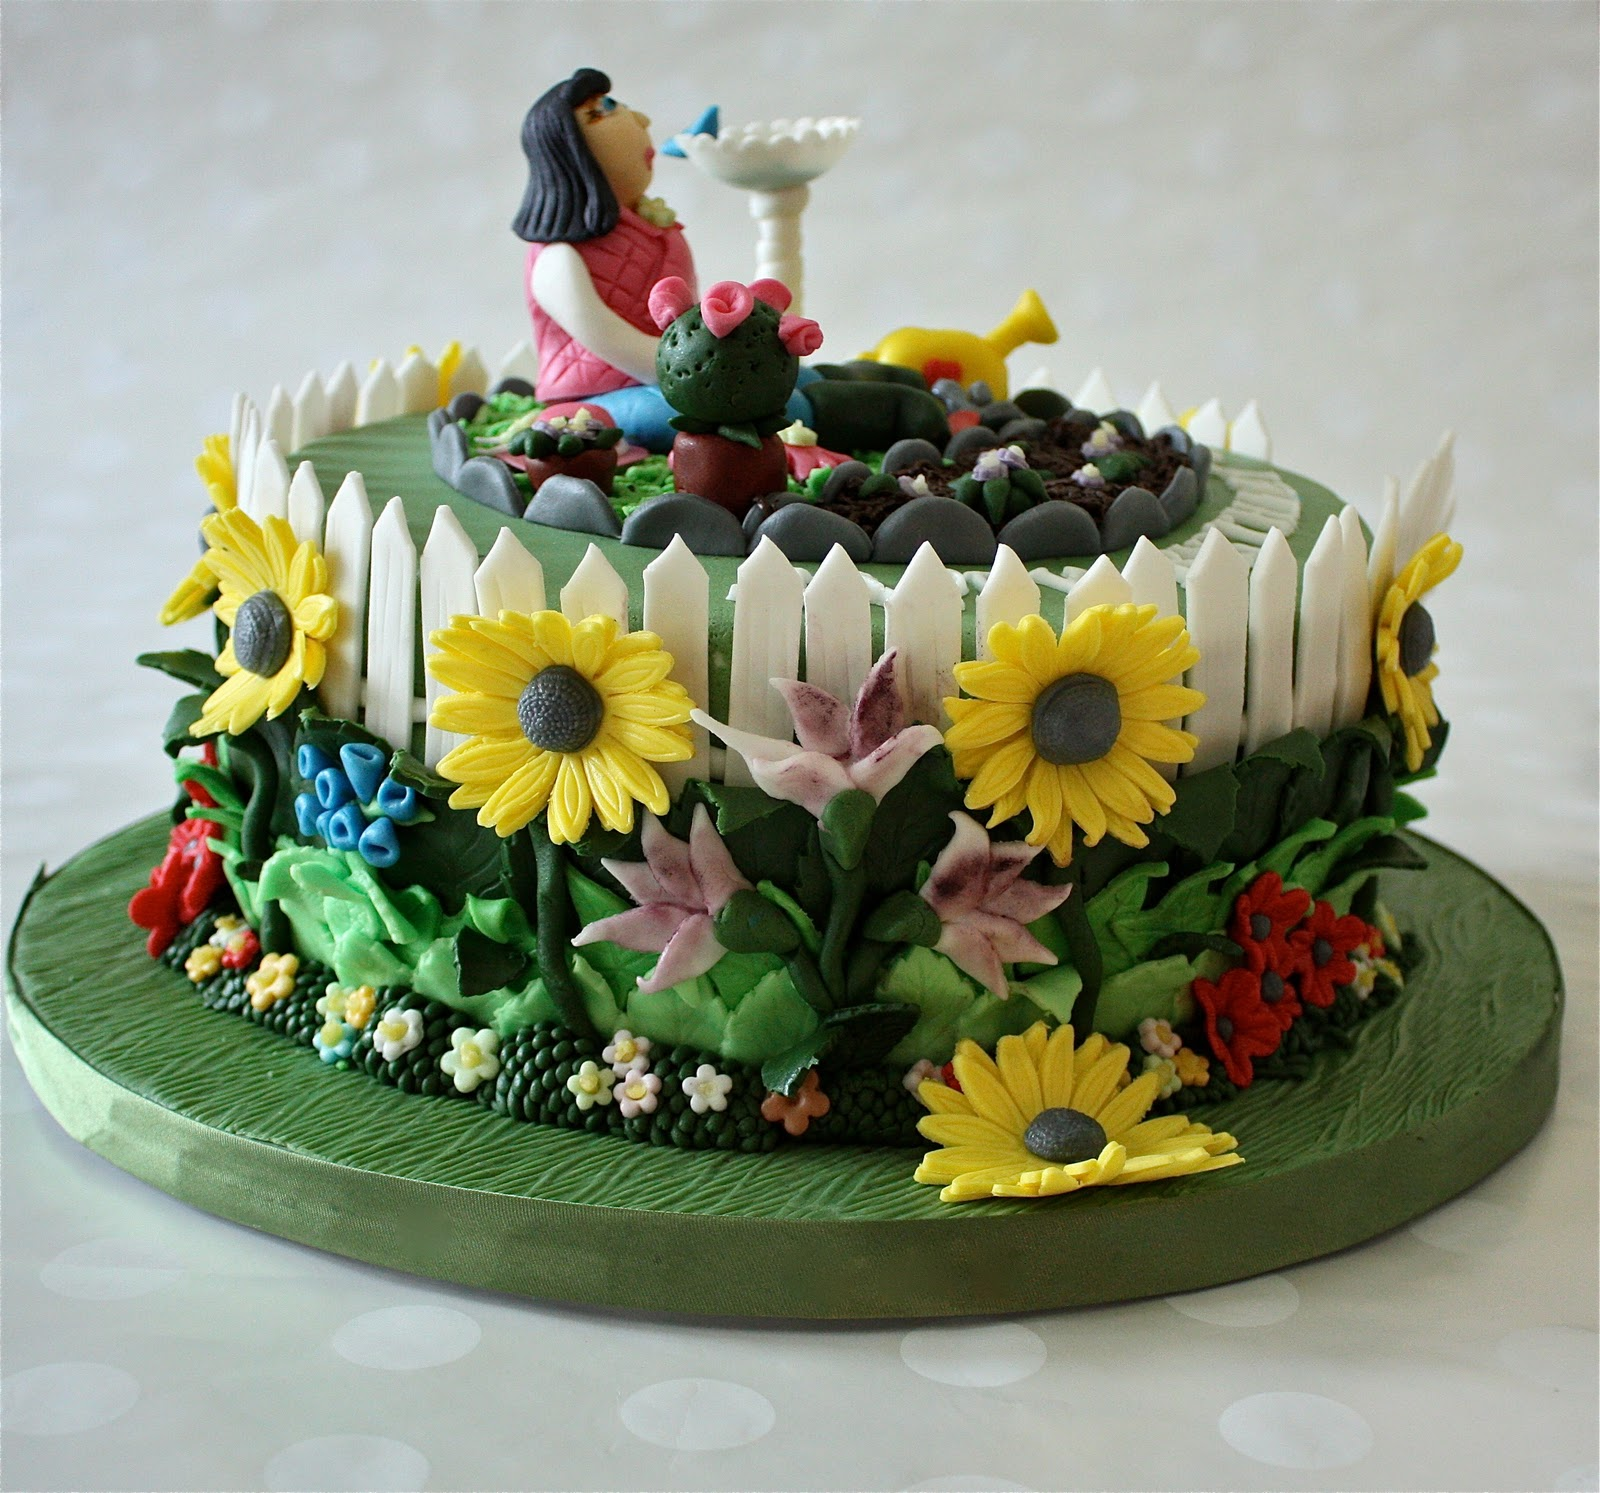 Cake Is For A Lady Turning To 70 Today And Who Also Loves Gardening